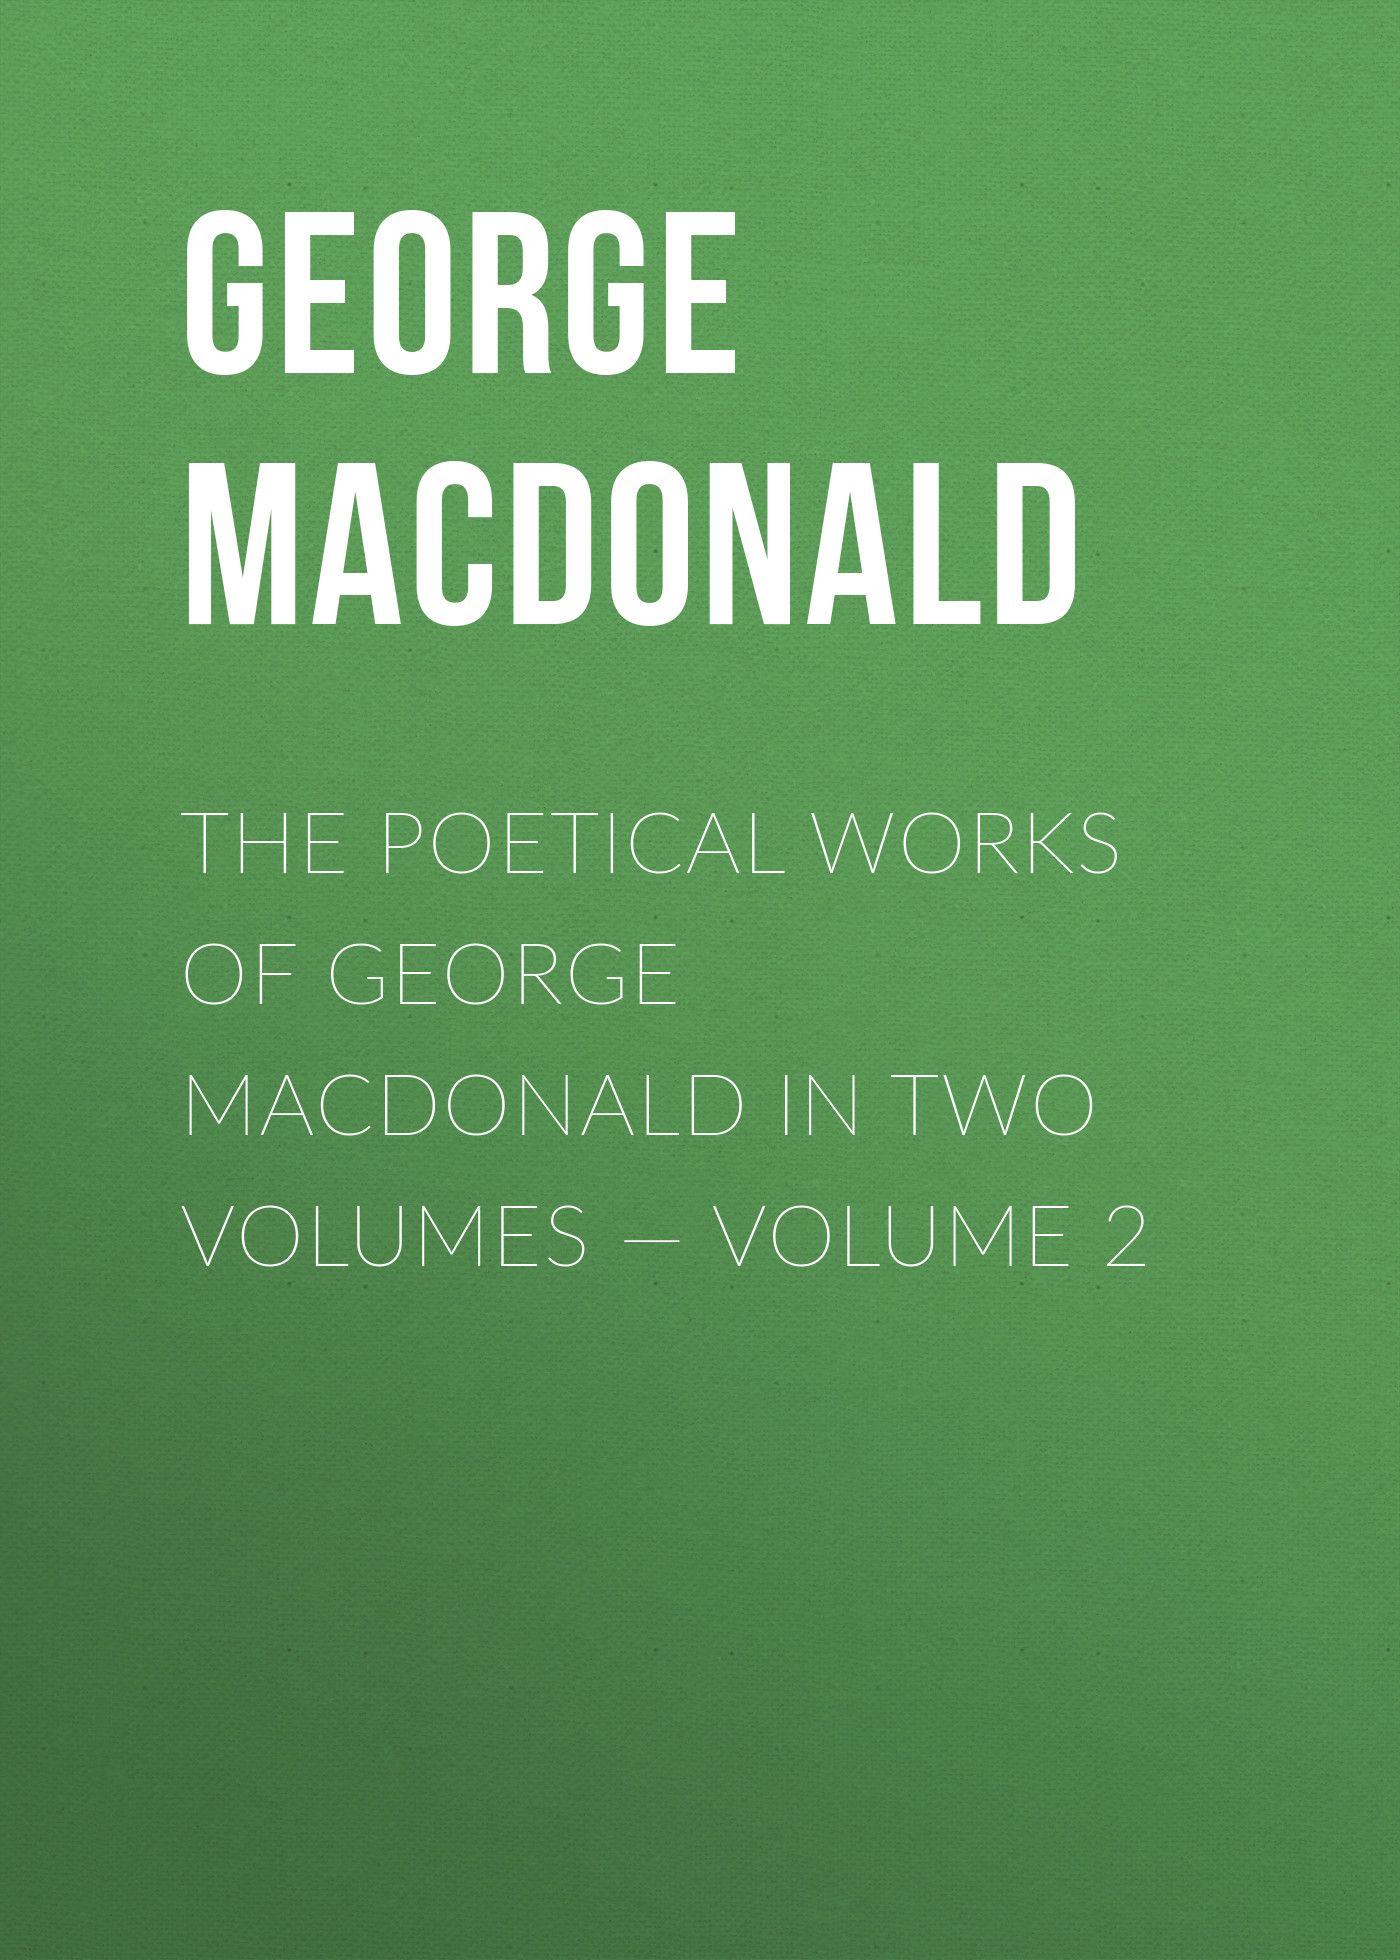 George MacDonald The poetical works of George MacDonald in two volumes — Volume 2 george macdonald the seaboard parish volume 1